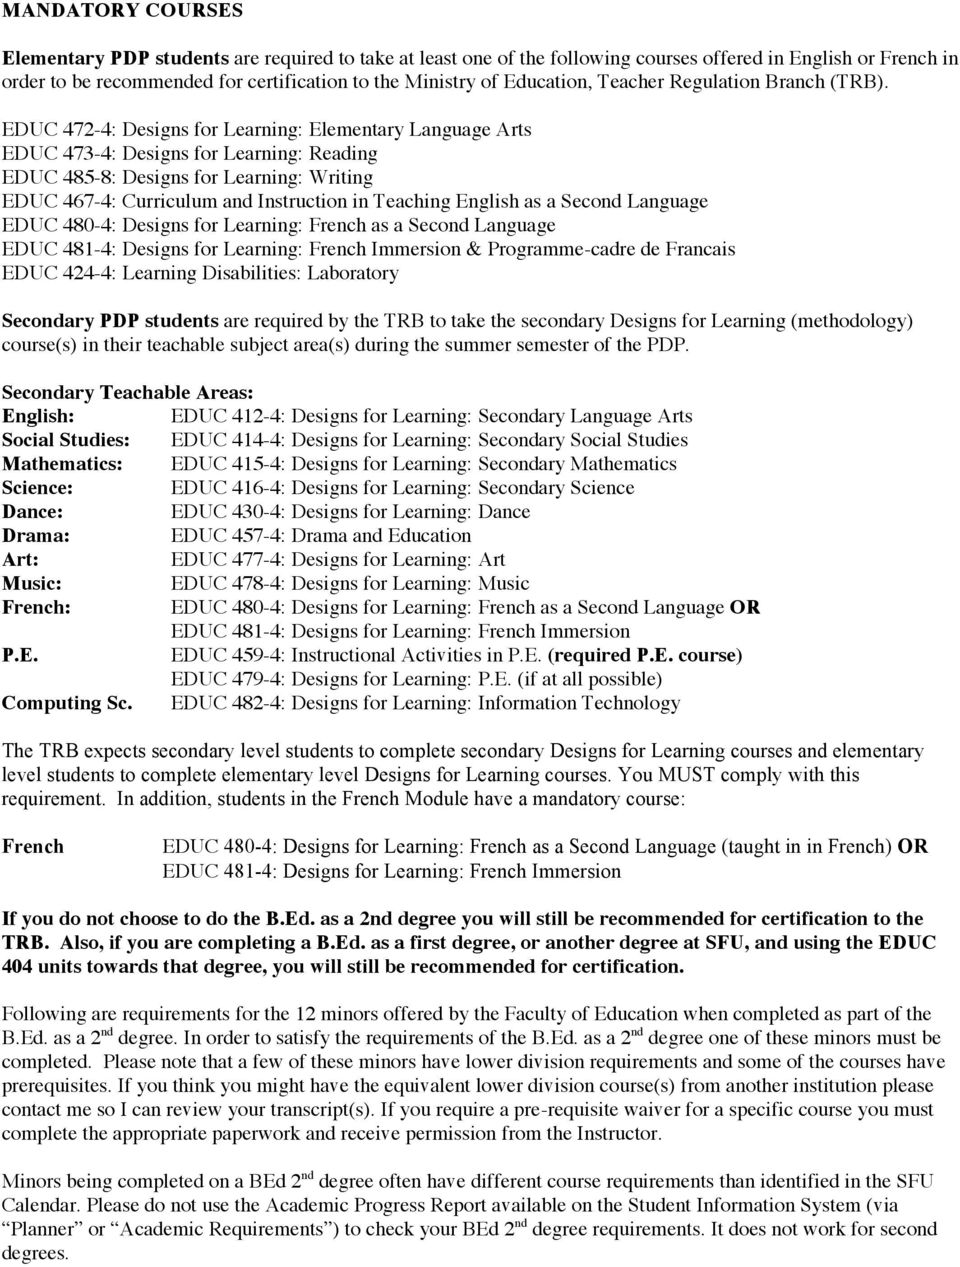 EDUC 472-4: Designs for Learning: Elementary Language Arts EDUC 473-4: Designs for Learning: Reading EDUC 485-8: Designs for Learning: Writing EDUC 467-4: Curriculum and Instruction in Teaching